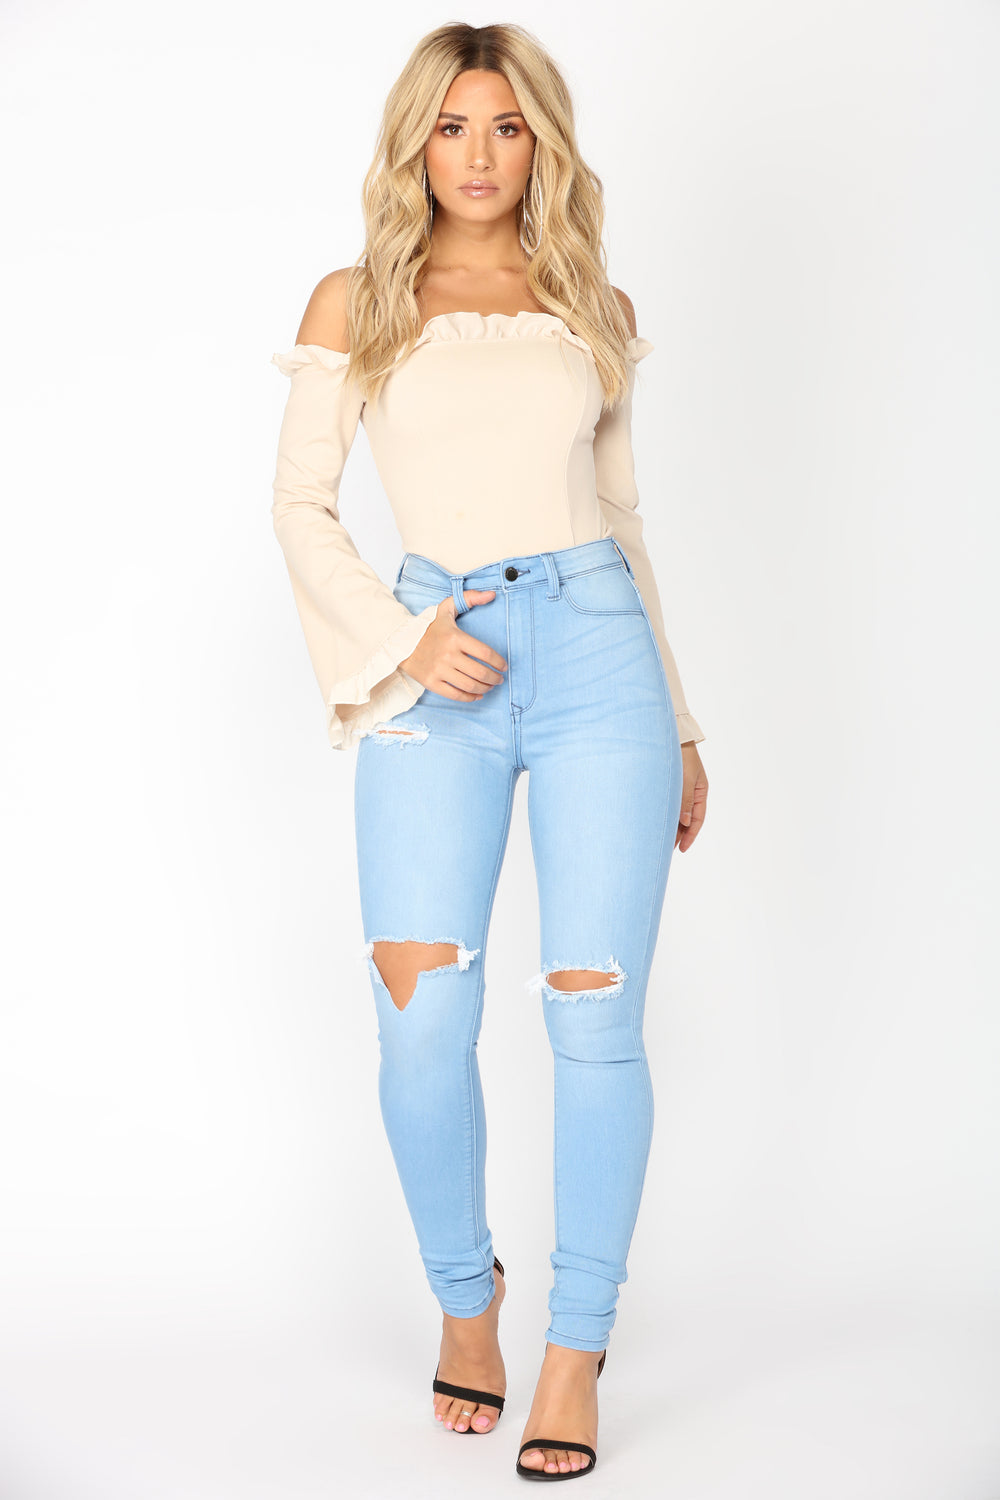 Jeans: 1456 Movs, listed by Popularity